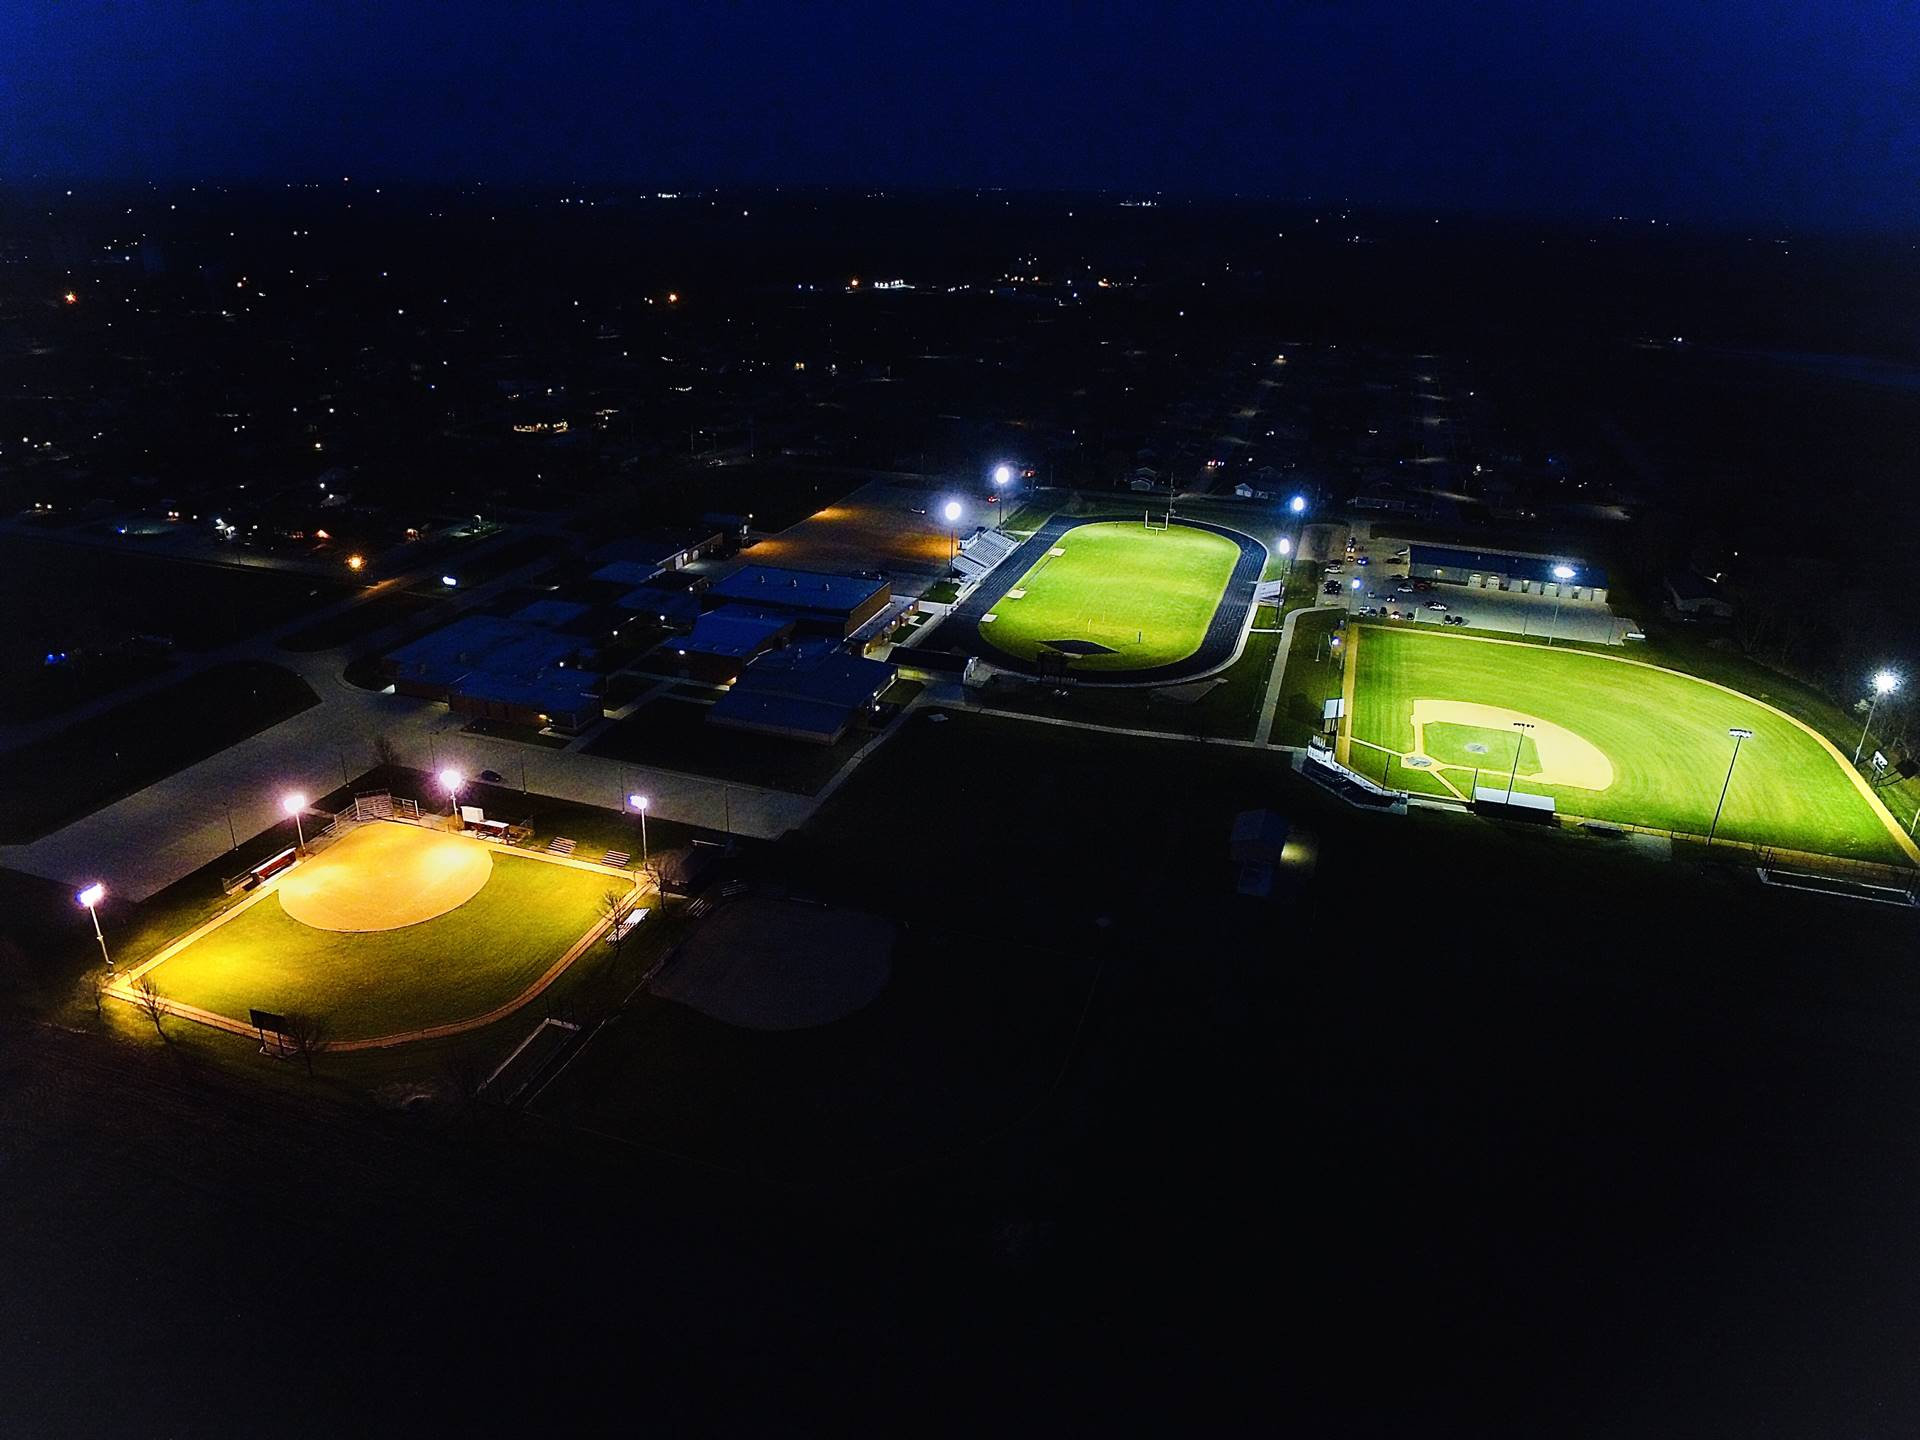 aerial evening photo of high school campus